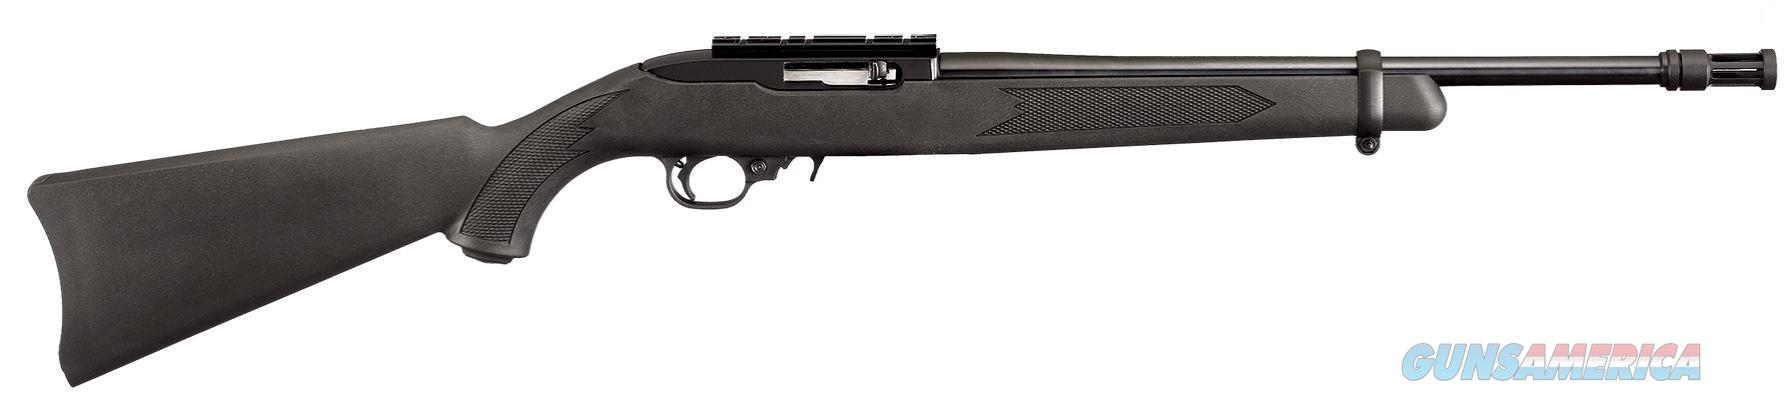 """Ruger 10/22 Tactical .22 LR 16.1"""" 10+1 - New in Box  Guns > Rifles > Ruger Rifles > 10-22"""